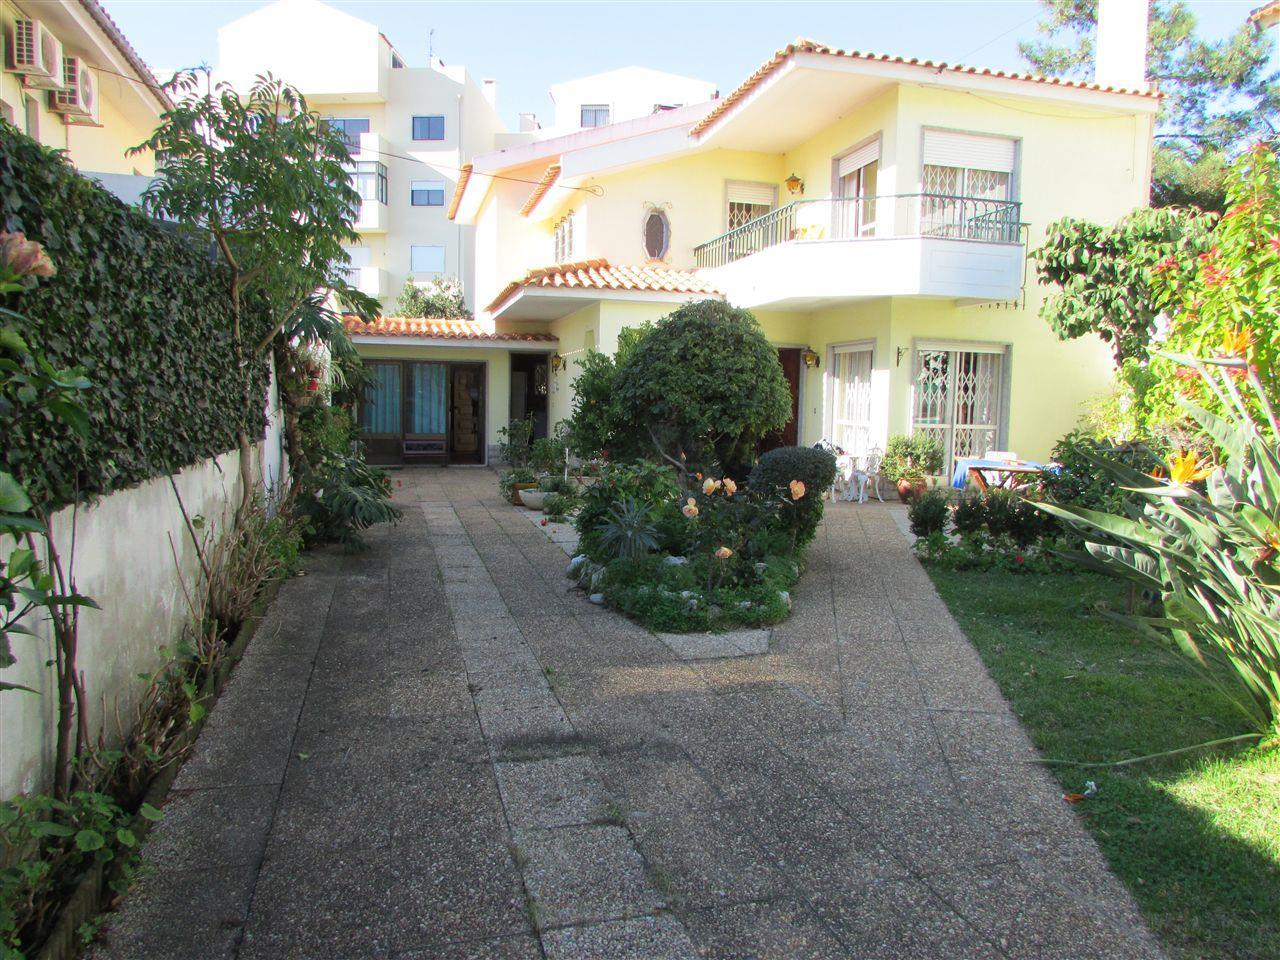 独户住宅 为 销售 在 House, 4 bedrooms, for Sale Cascais, 葡京 葡萄牙